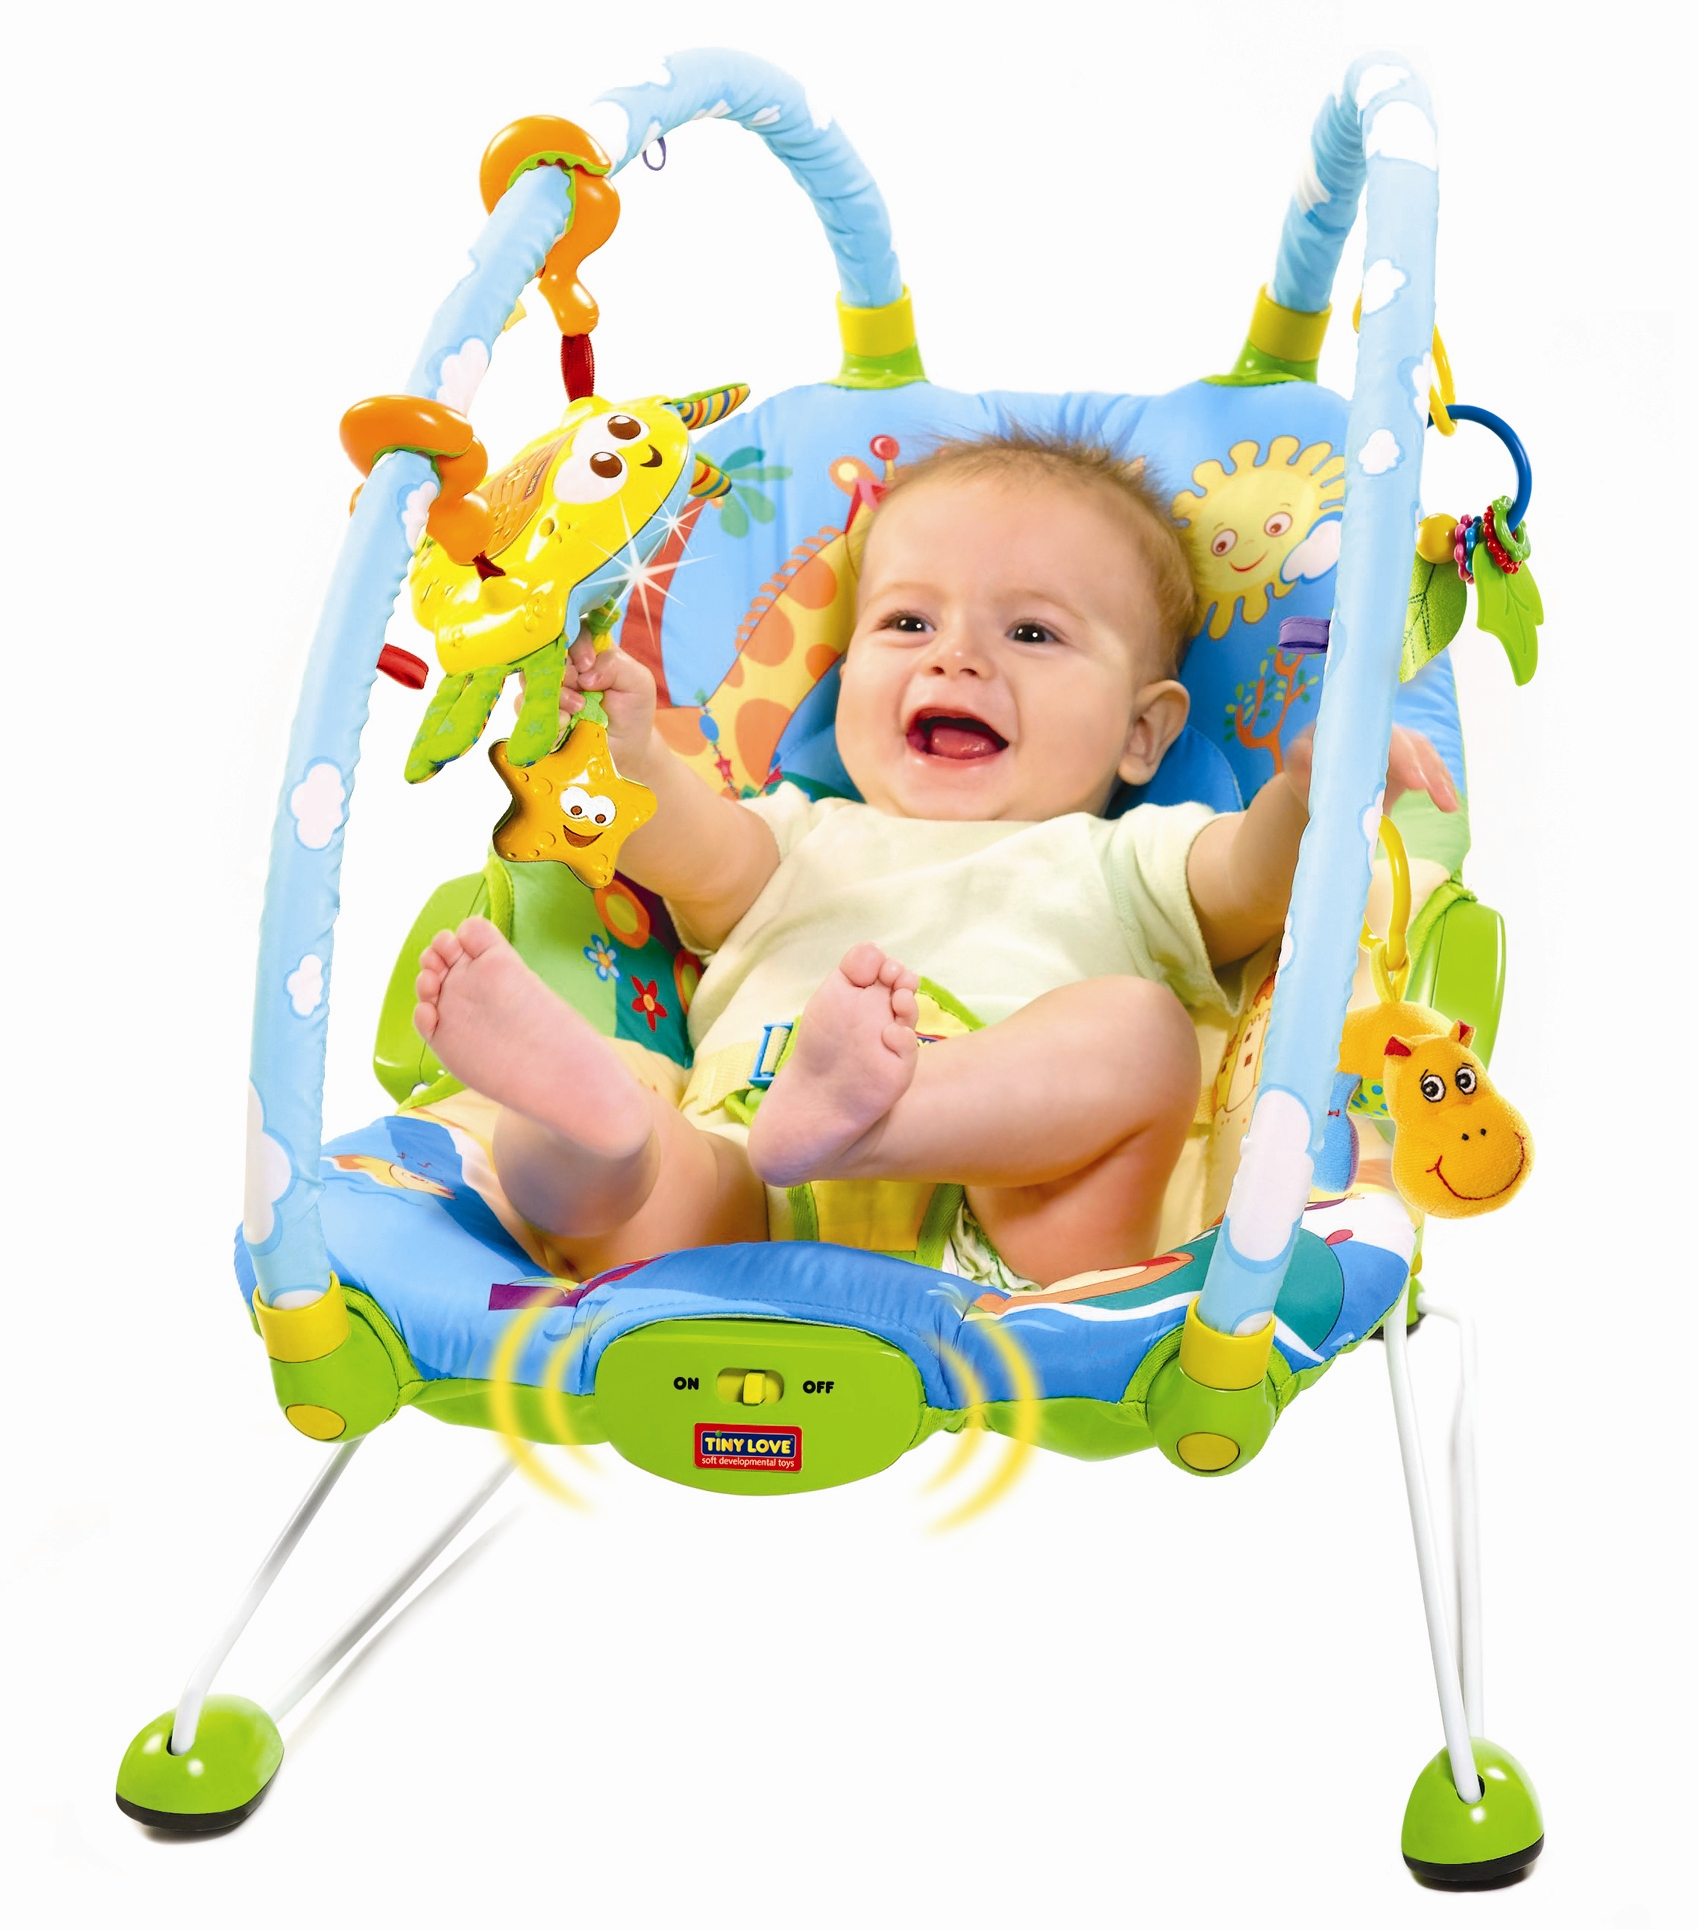 Gears » babyworld » The Complete Baby Shopping